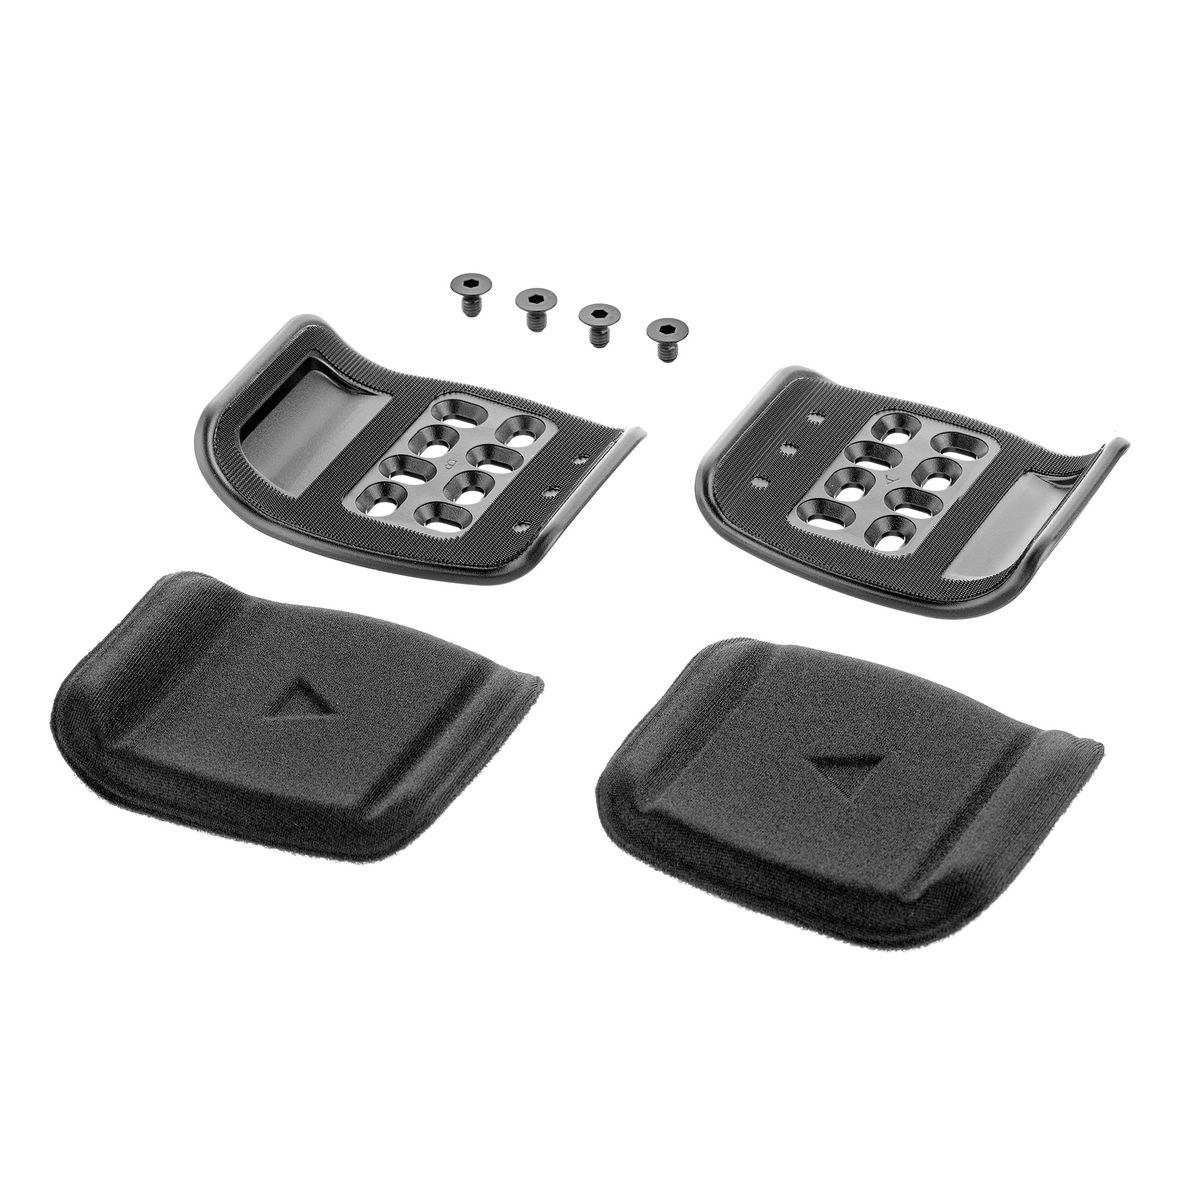 F40TT arm rest kit